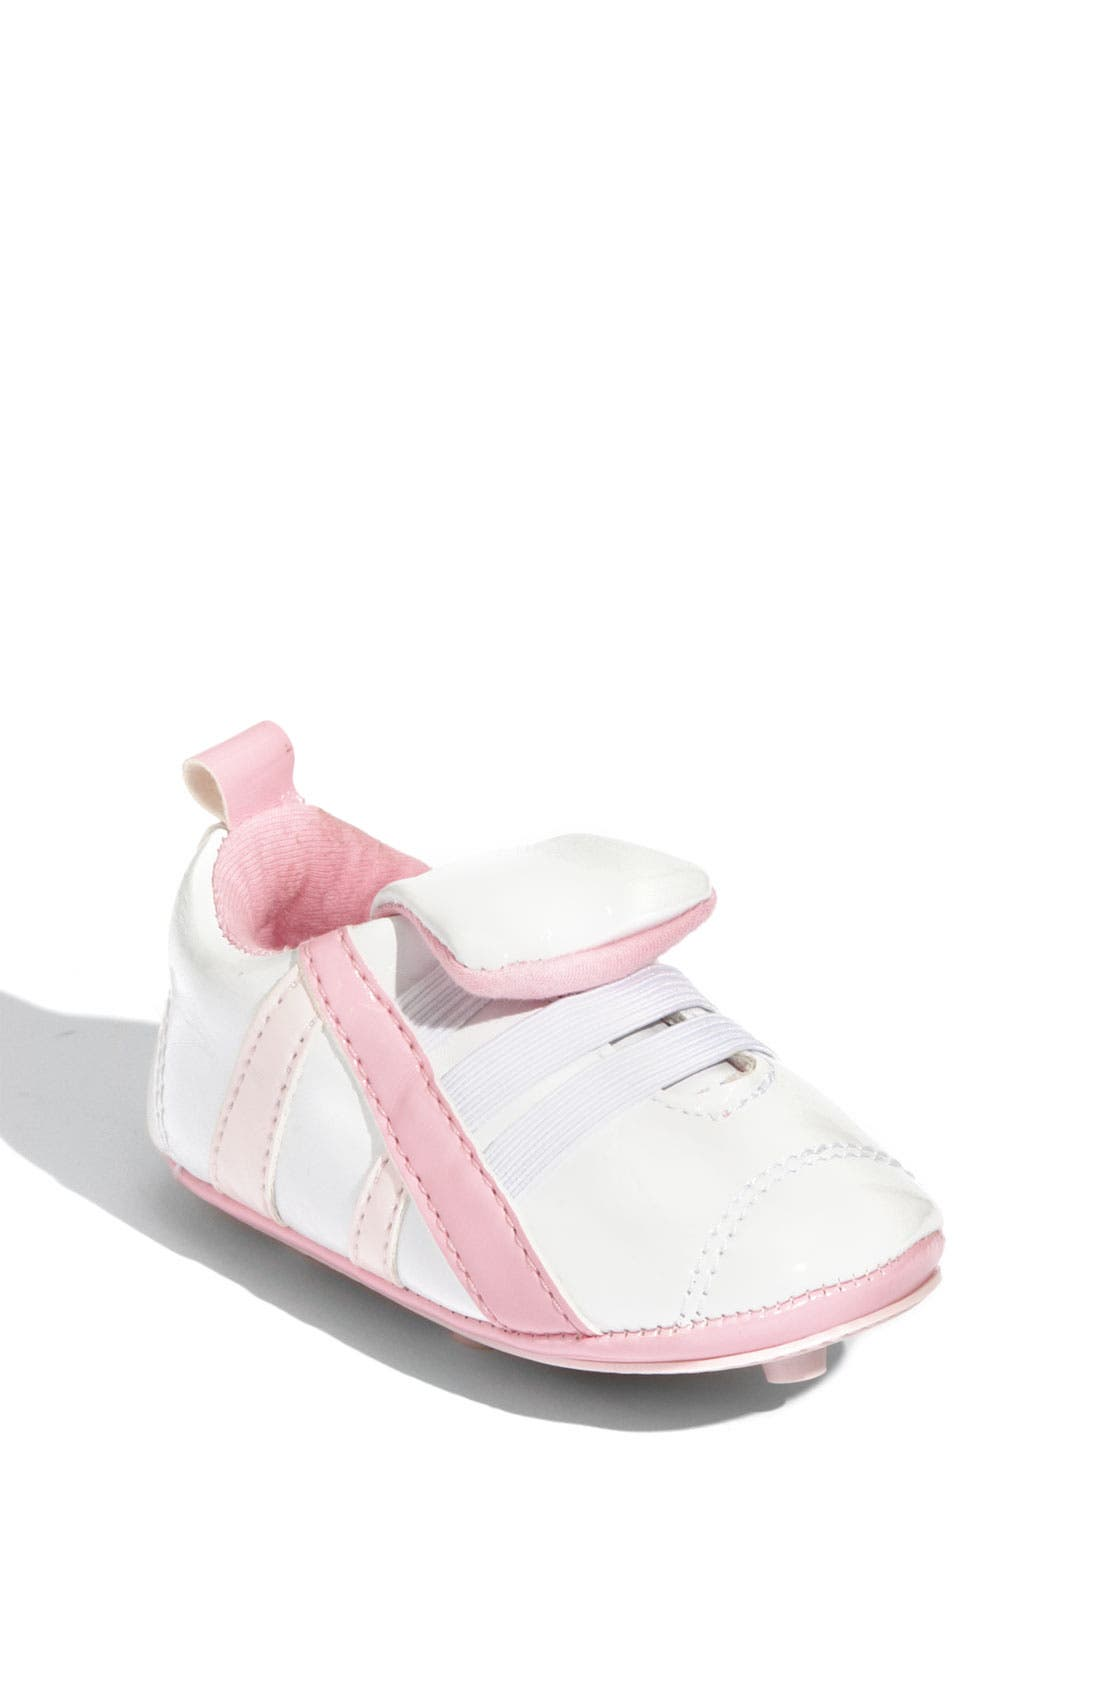 Alternate Image 1 Selected - First Cleats Shoe (Baby)